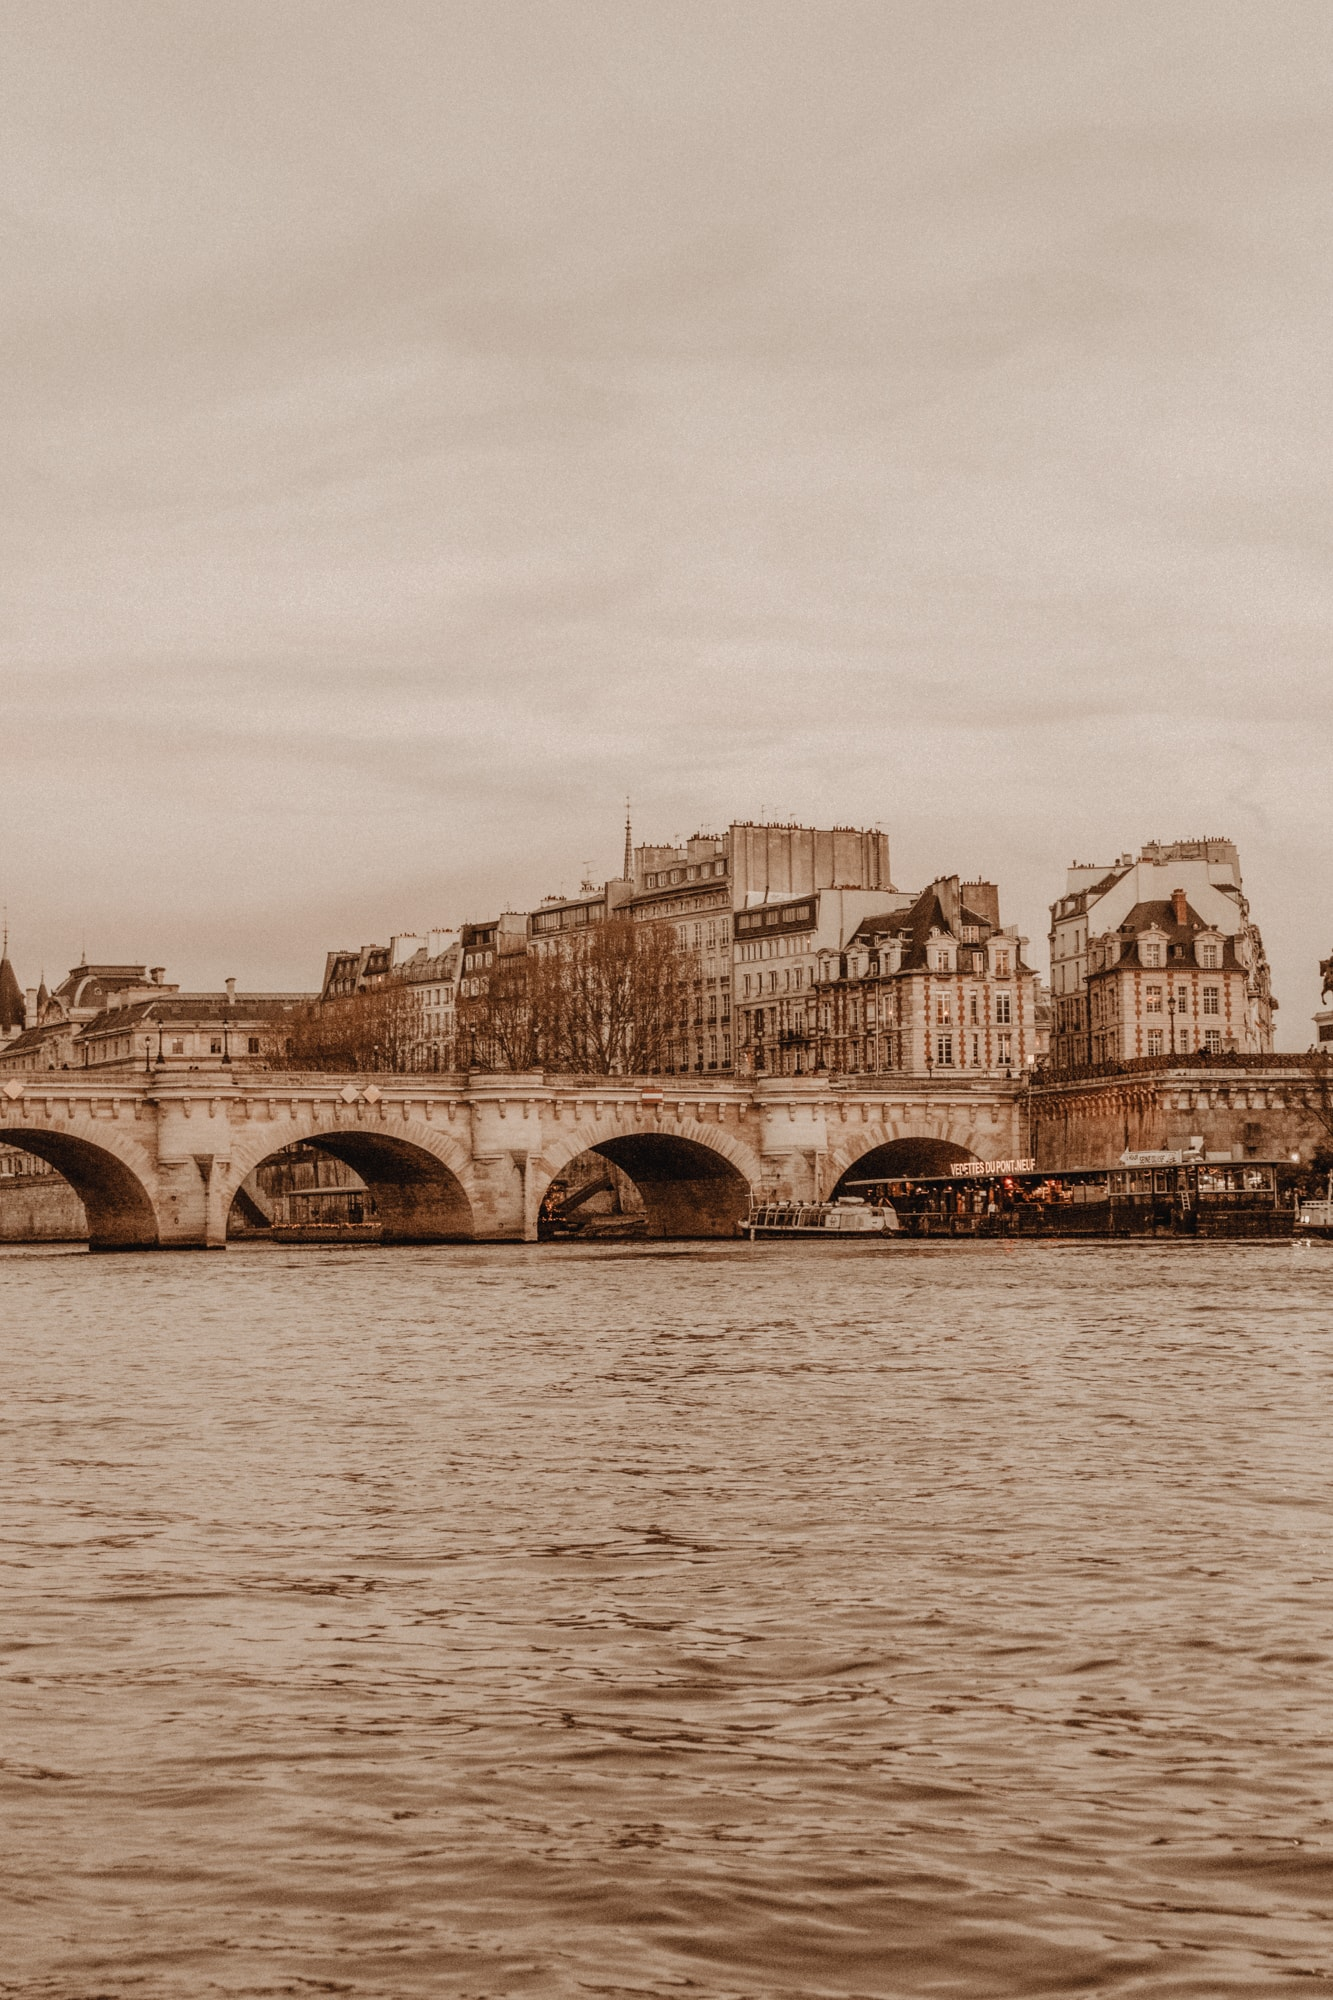 River Seine, Paris at sunset